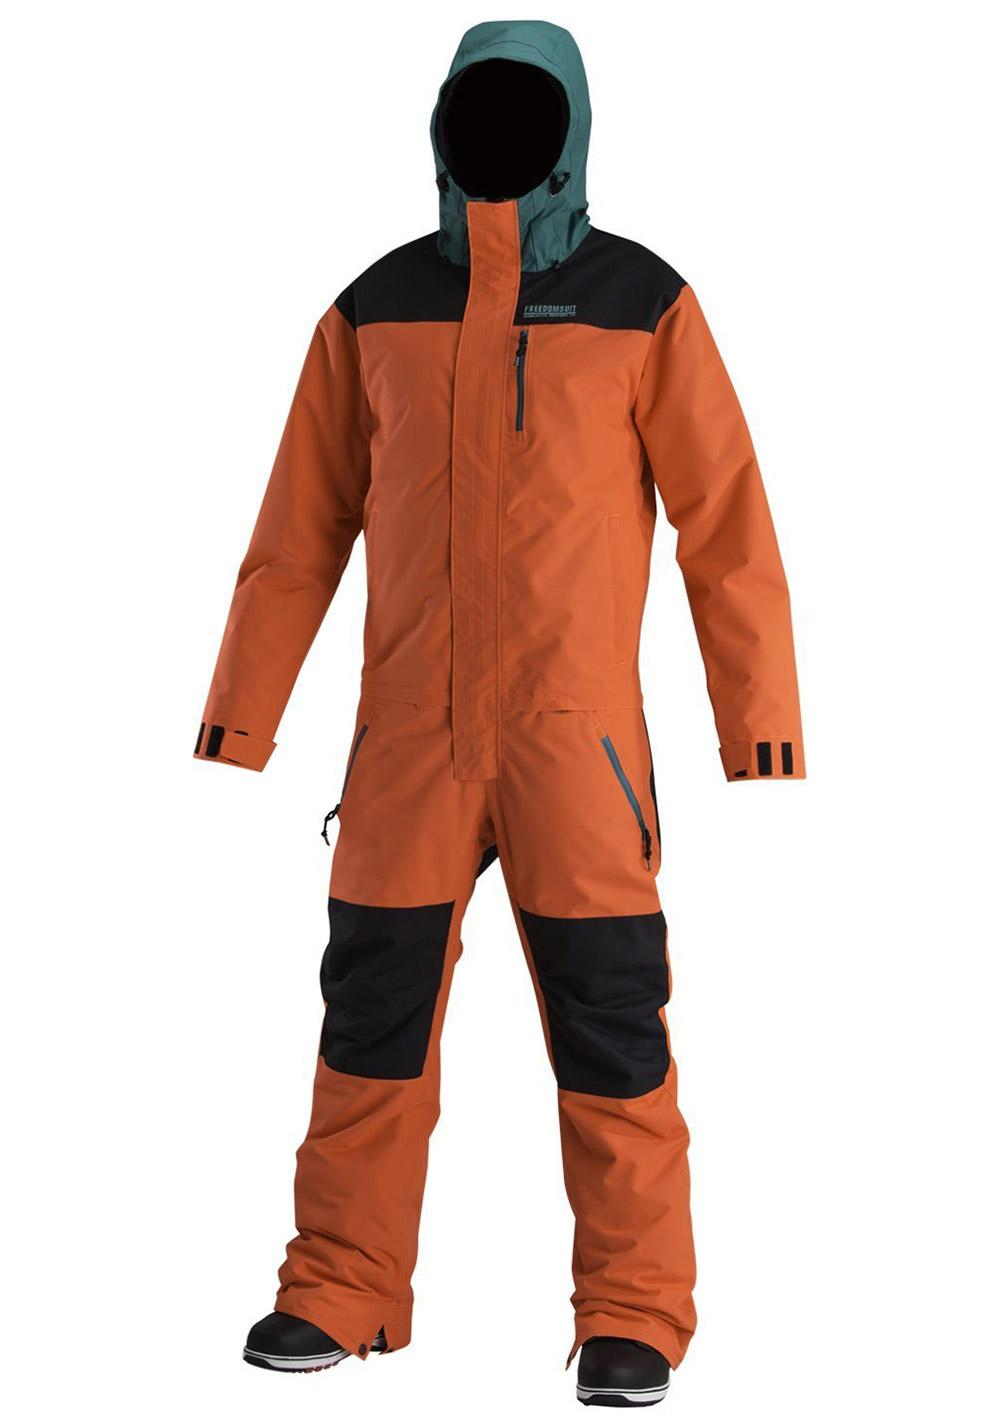 Snow Overall Airblaster x Gnu Insulated Freedom Suit - Größe: XL - Farbe: Orange